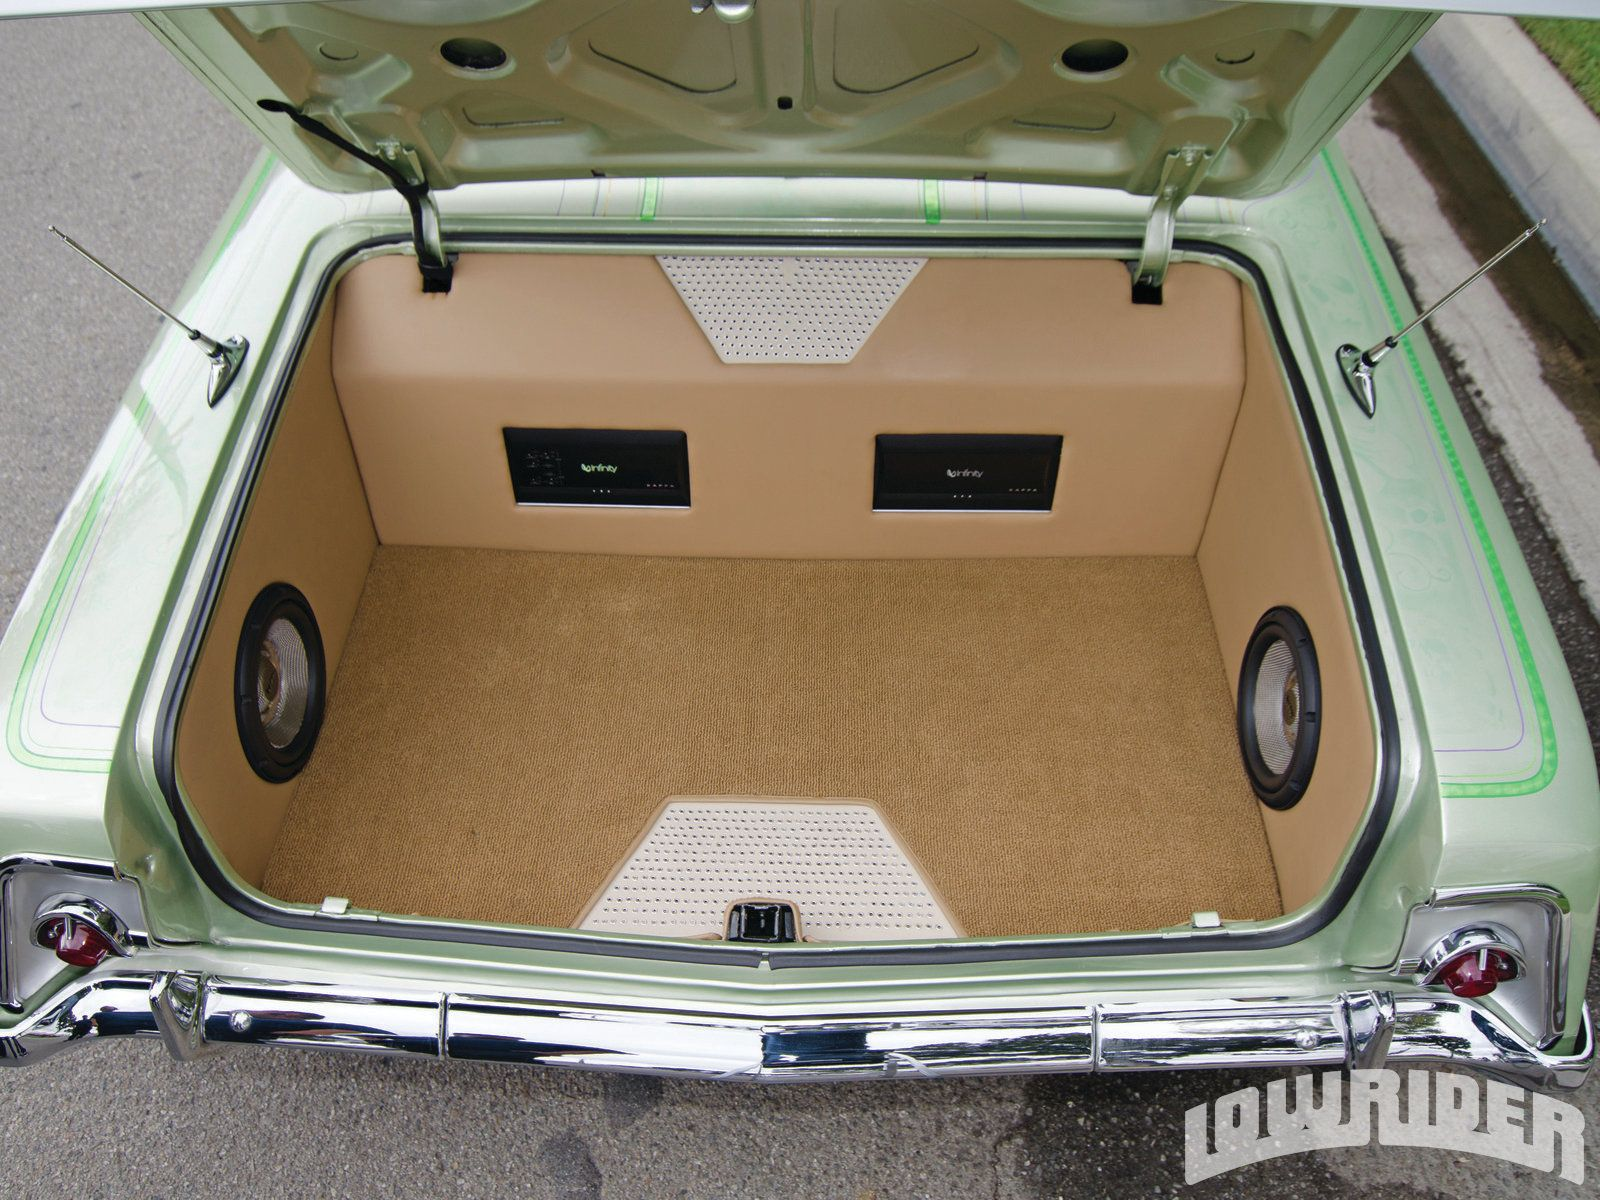 05 1962 Chevrolet Impala Custom Monitor And Speaker Setup Custom Car Interior Custom Car Audio Car Audio Systems